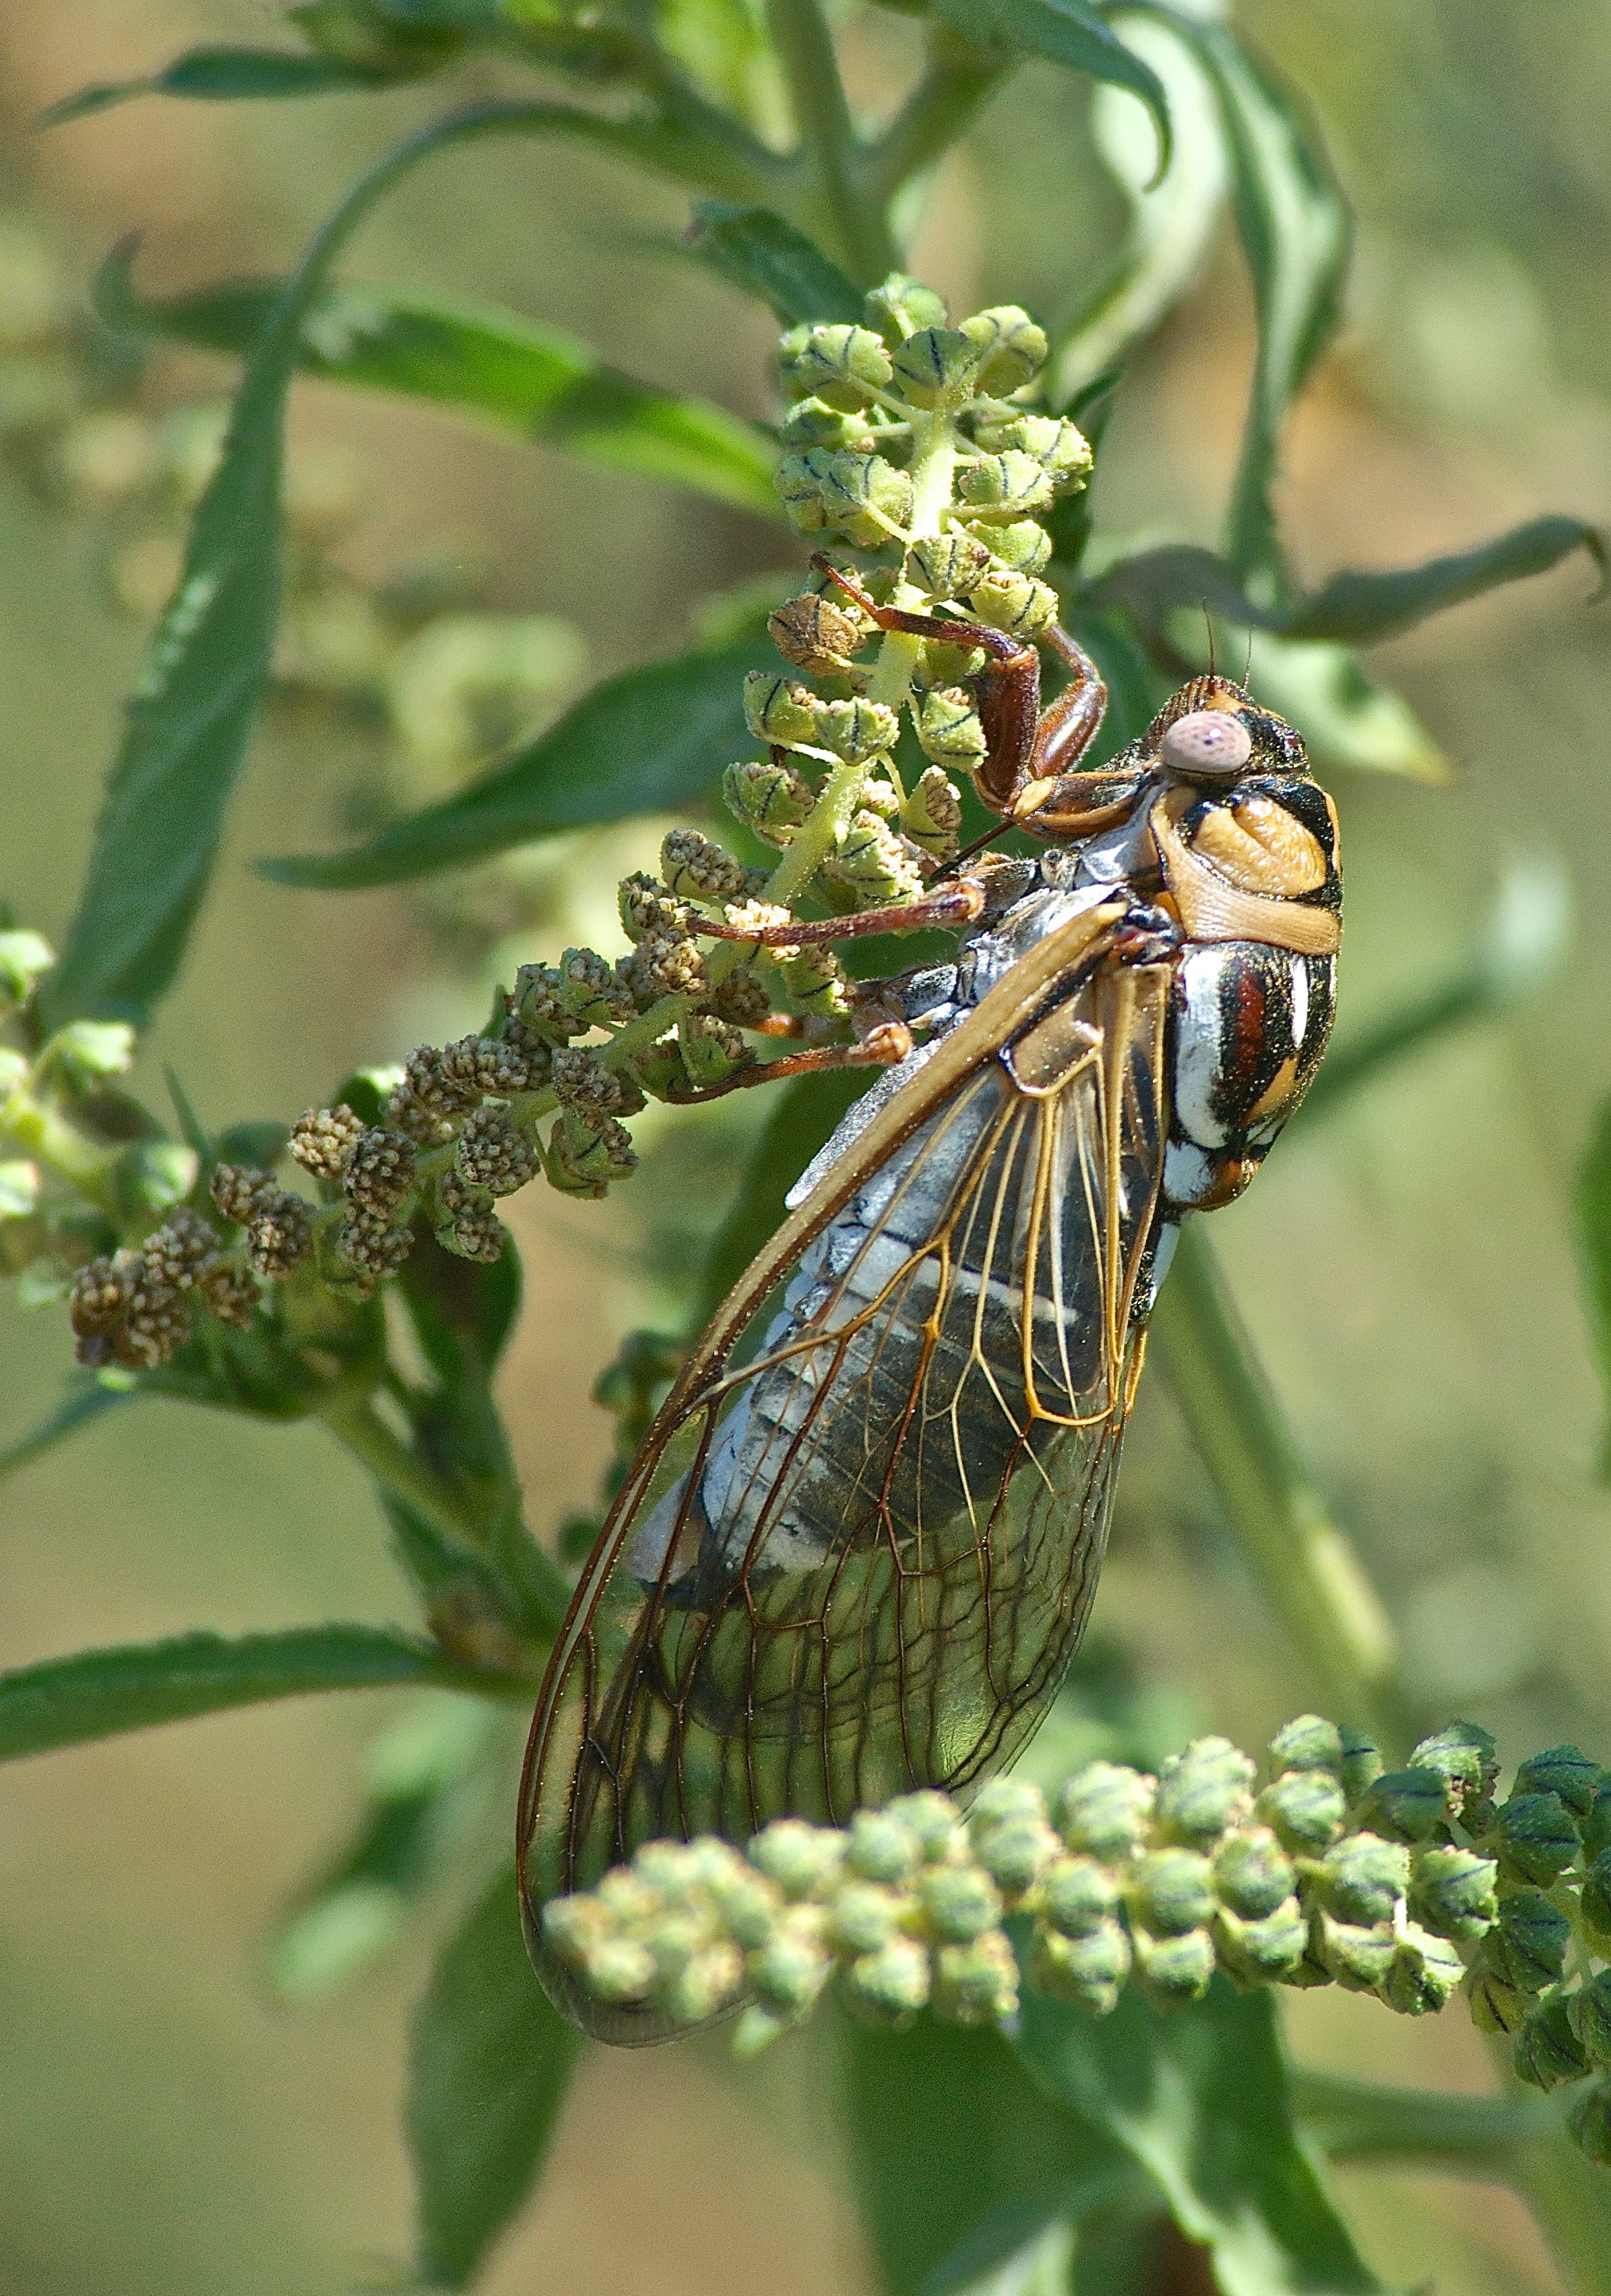 Cicada on Ragweed